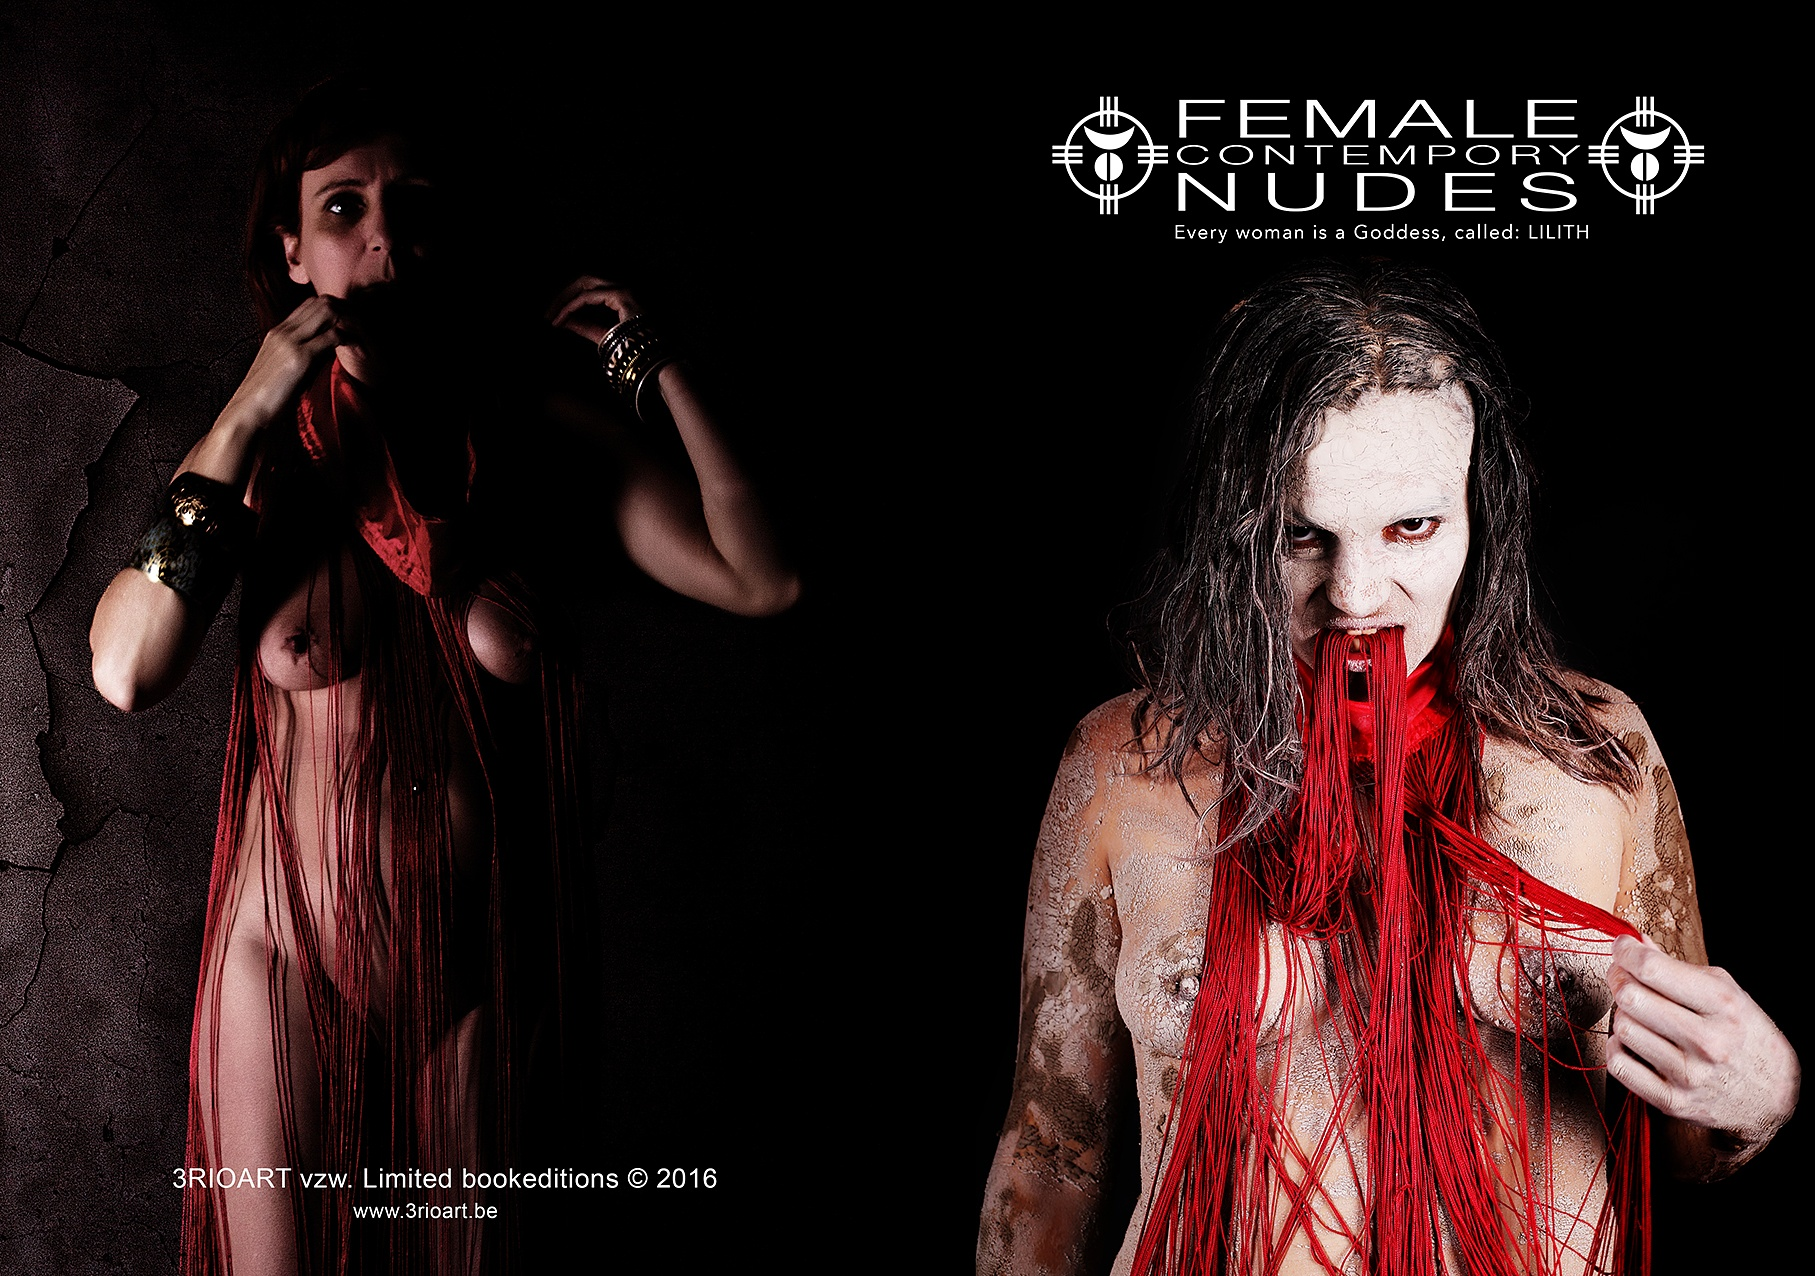 Contempory Female nudes BOOK release by Hybryds